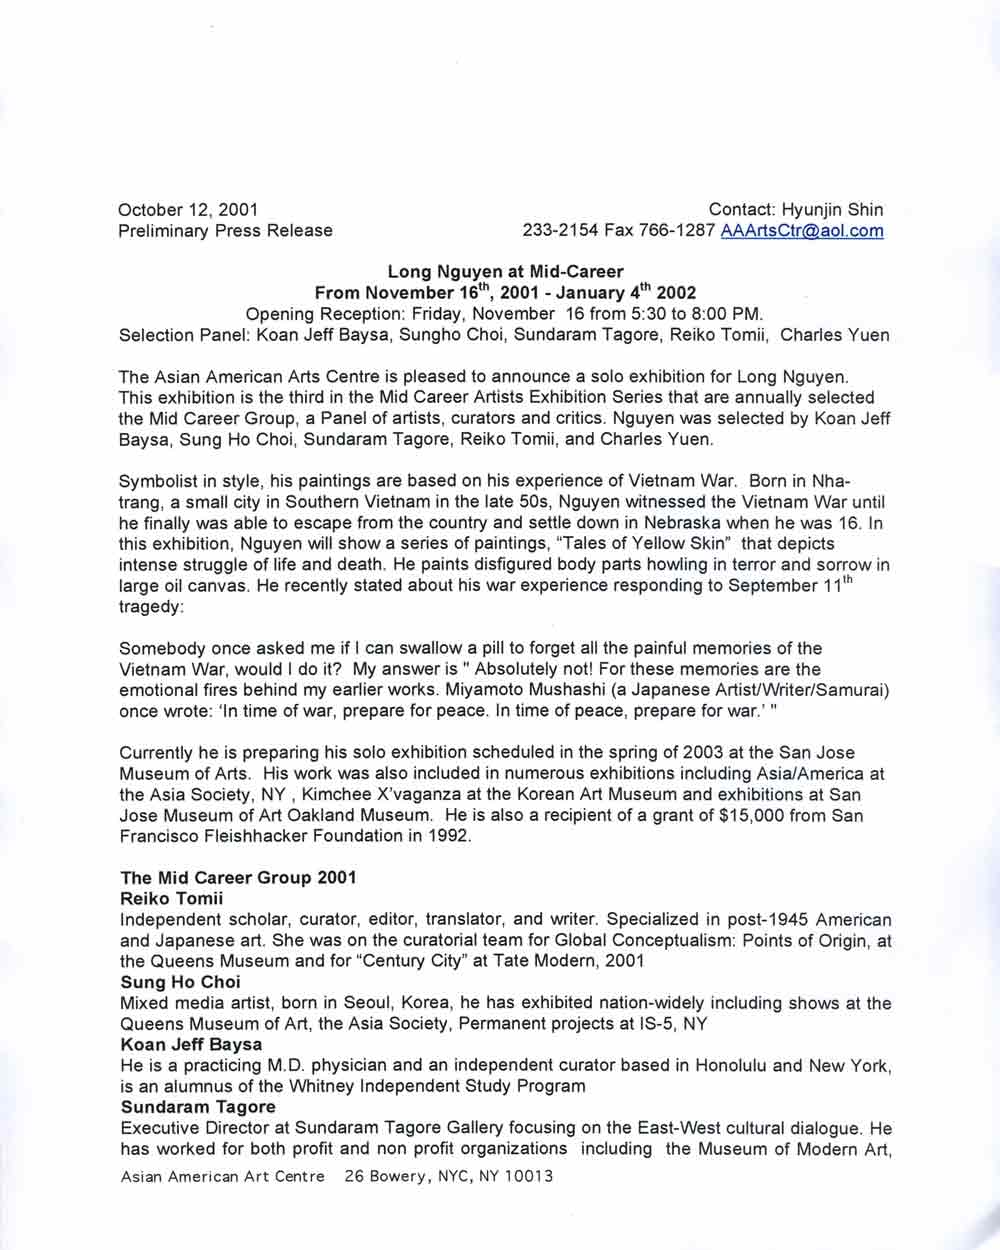 17 Squares press release, pg 1